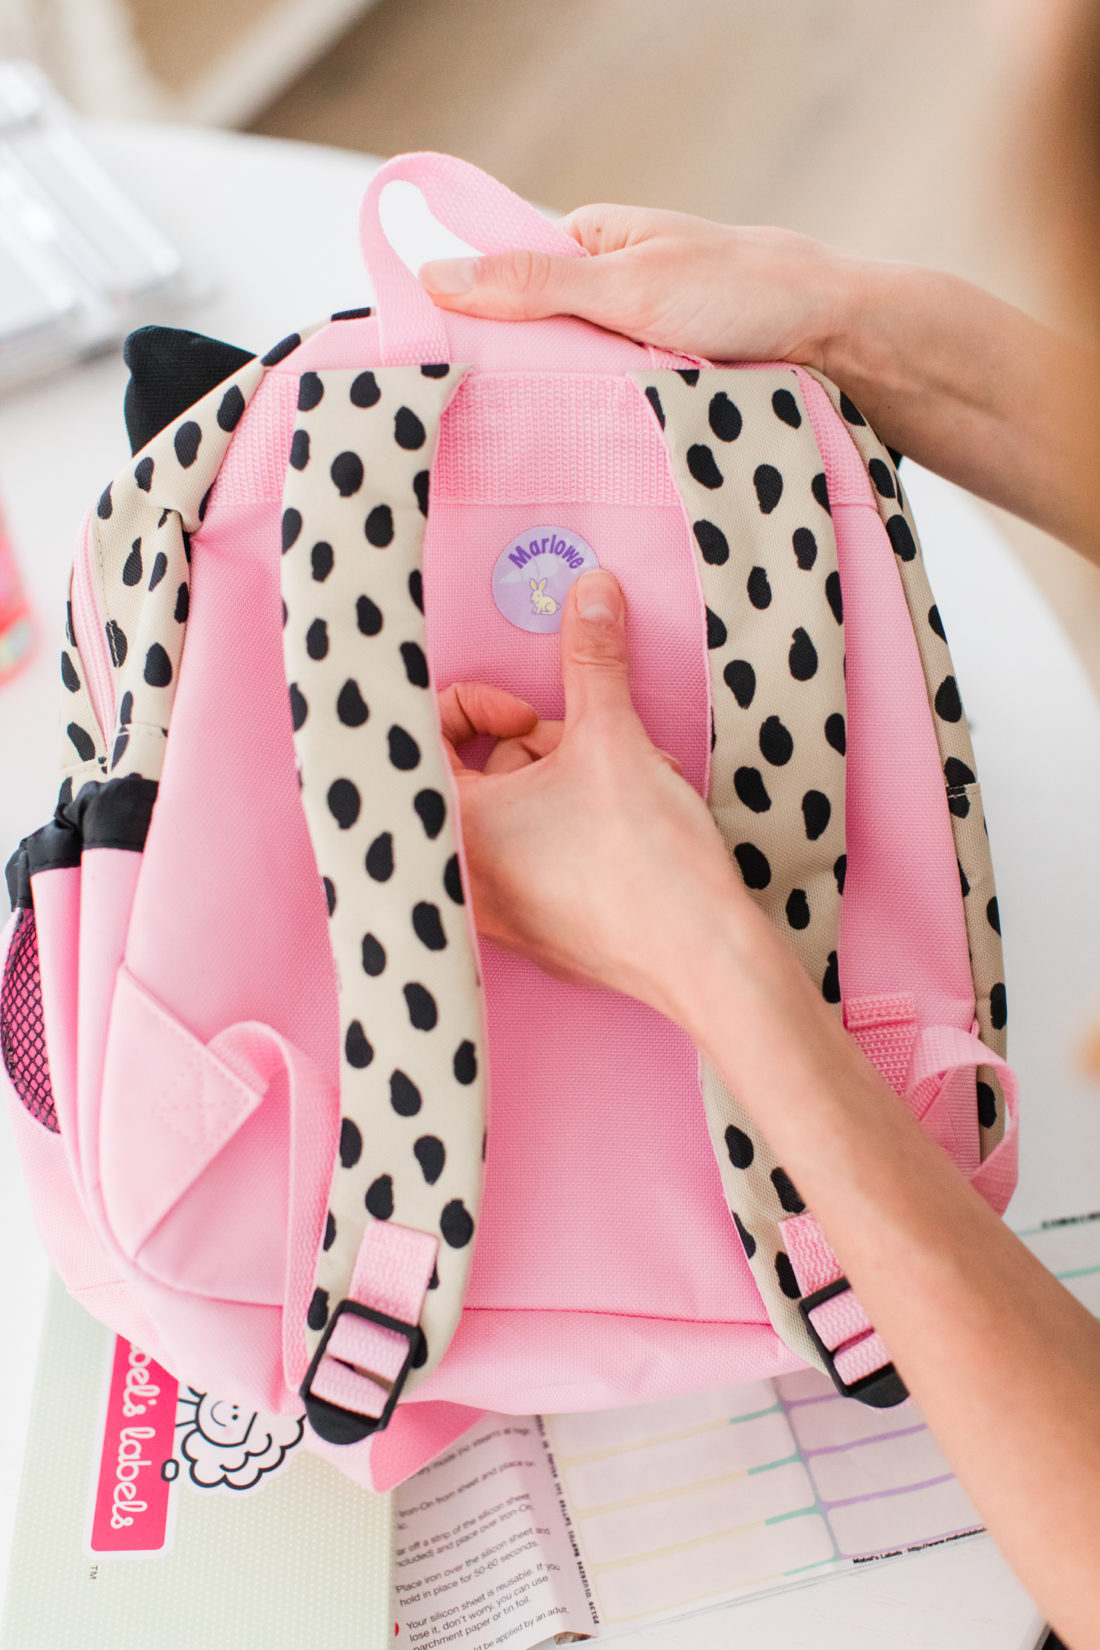 Eva Amurri Martino labels a kitty cat backpack as she prepares to send three year old daughter Marlowe off to preschool